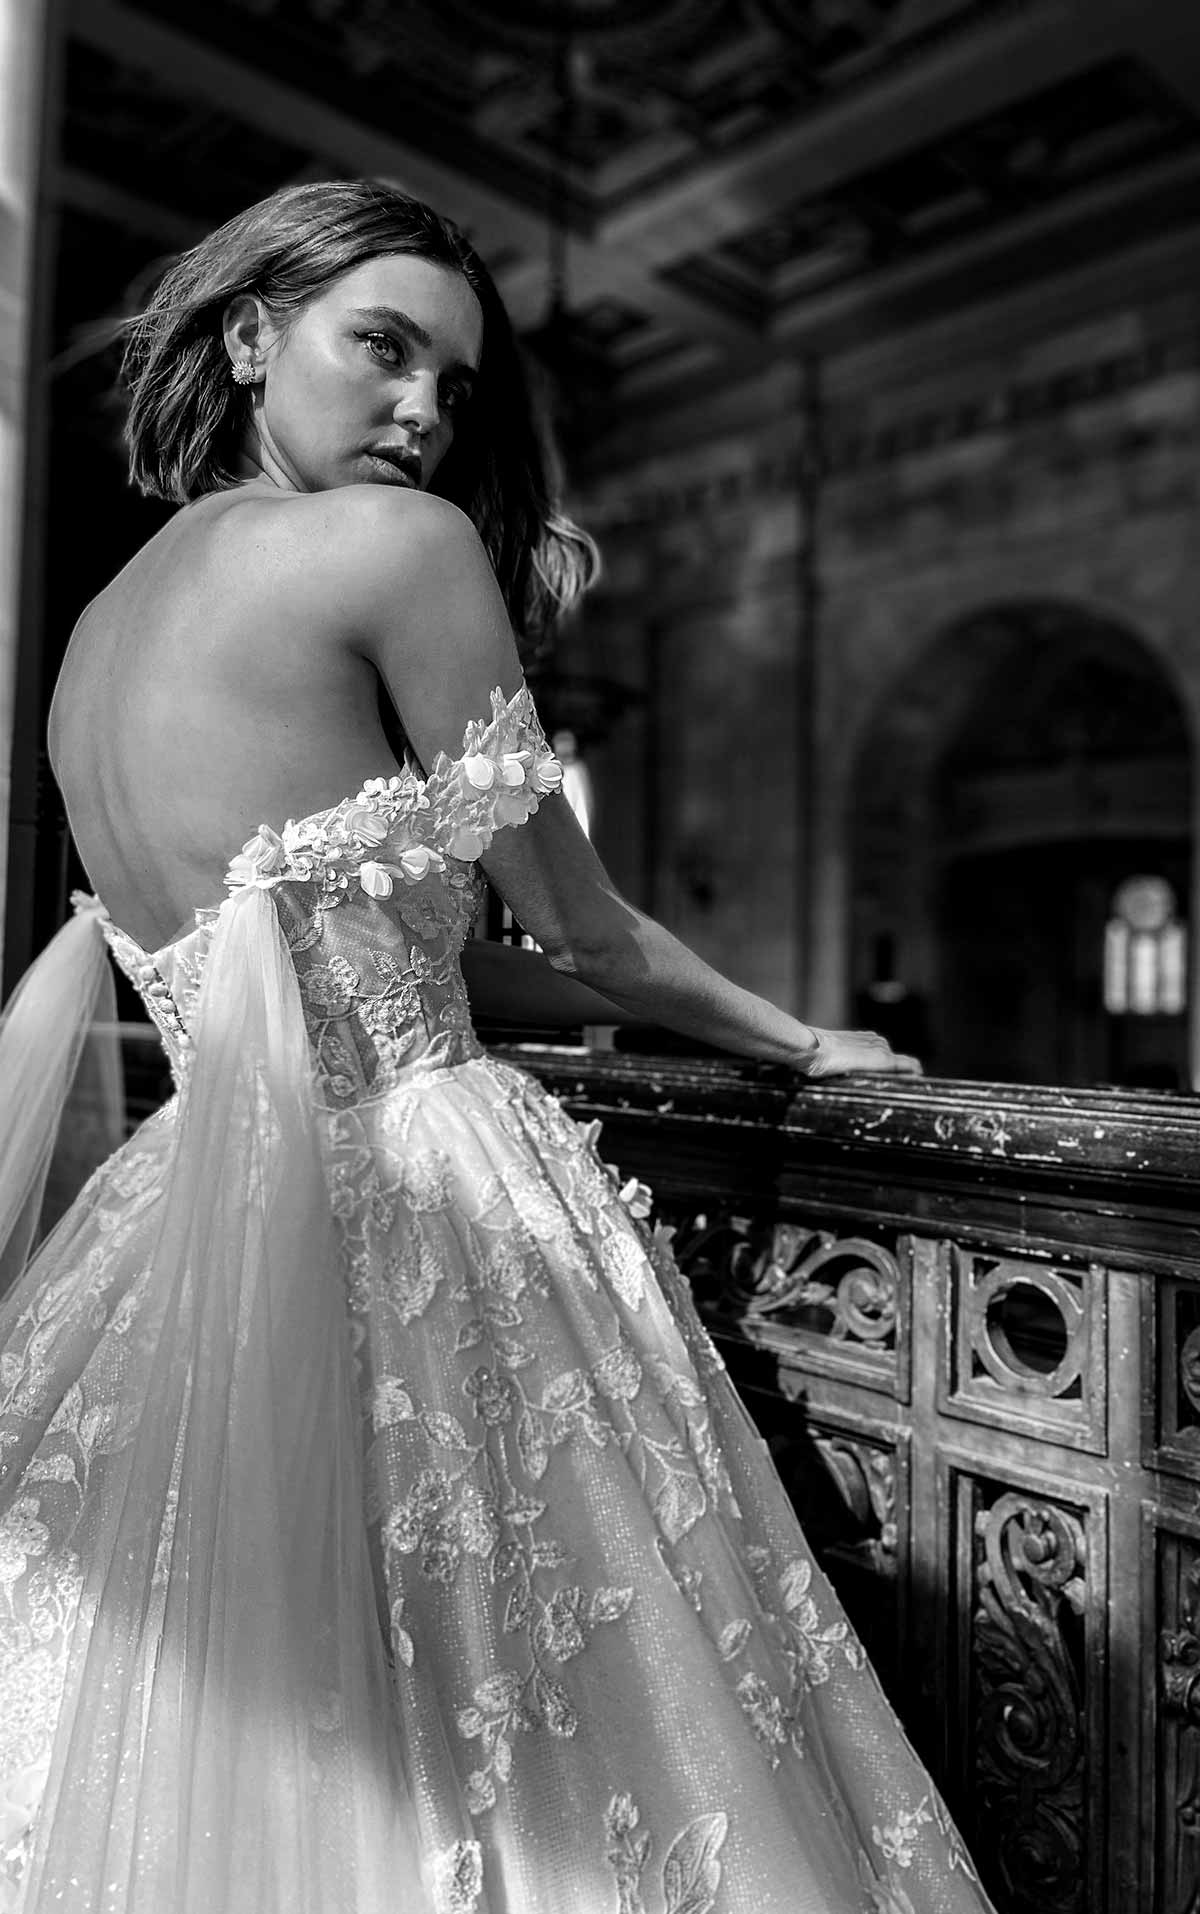 LE1117 High-Volume Lace Ballgown with Tulle Streamers by Martina Liana